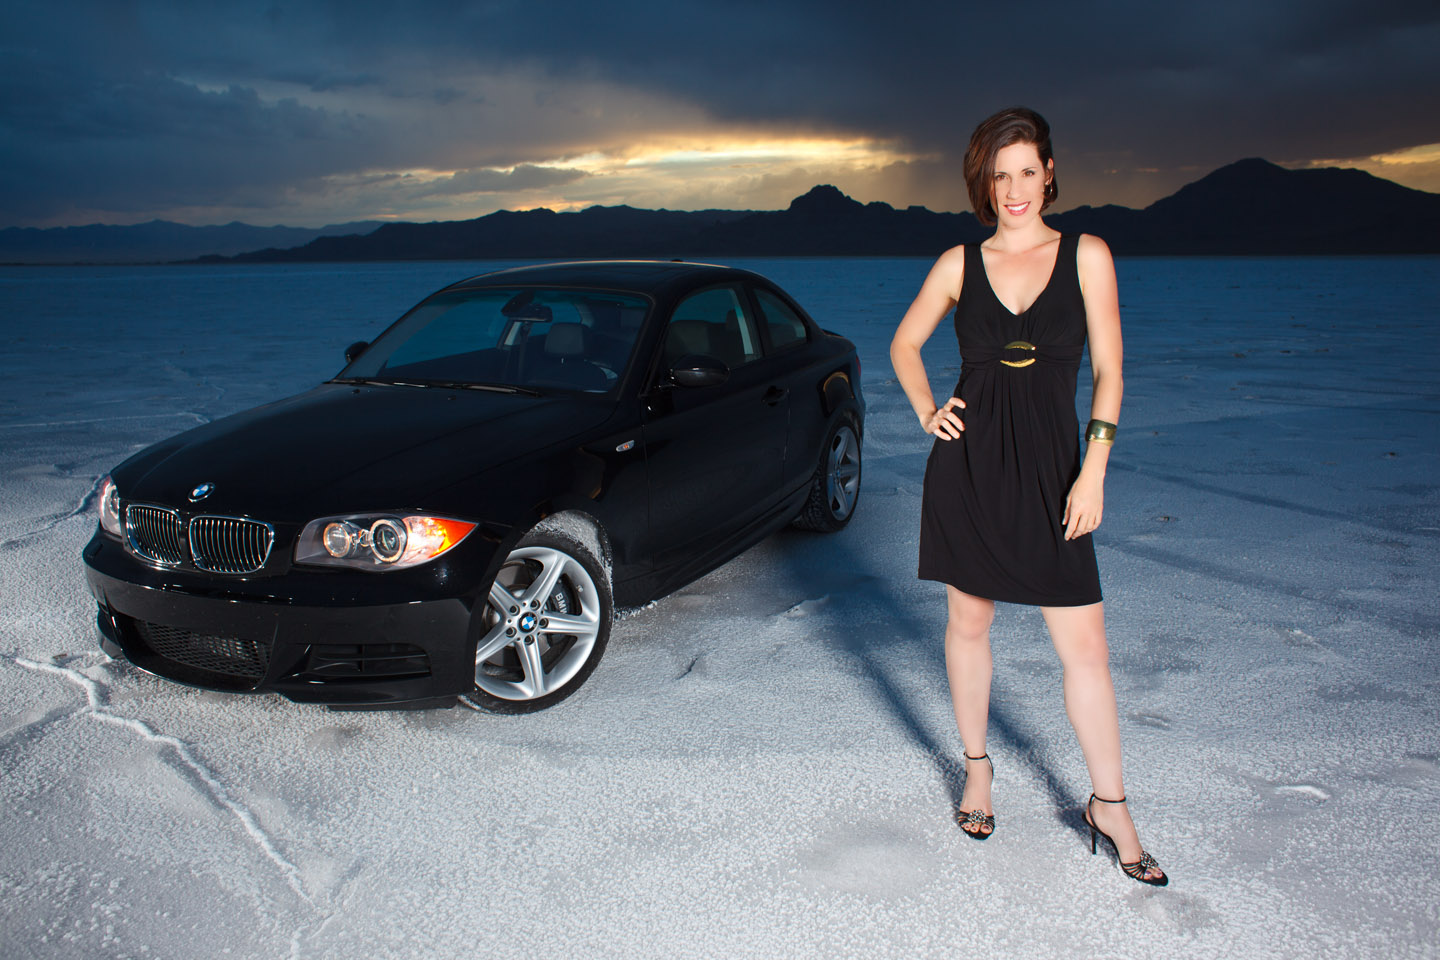 A model and a BMW on the Bonneville Salt Flats